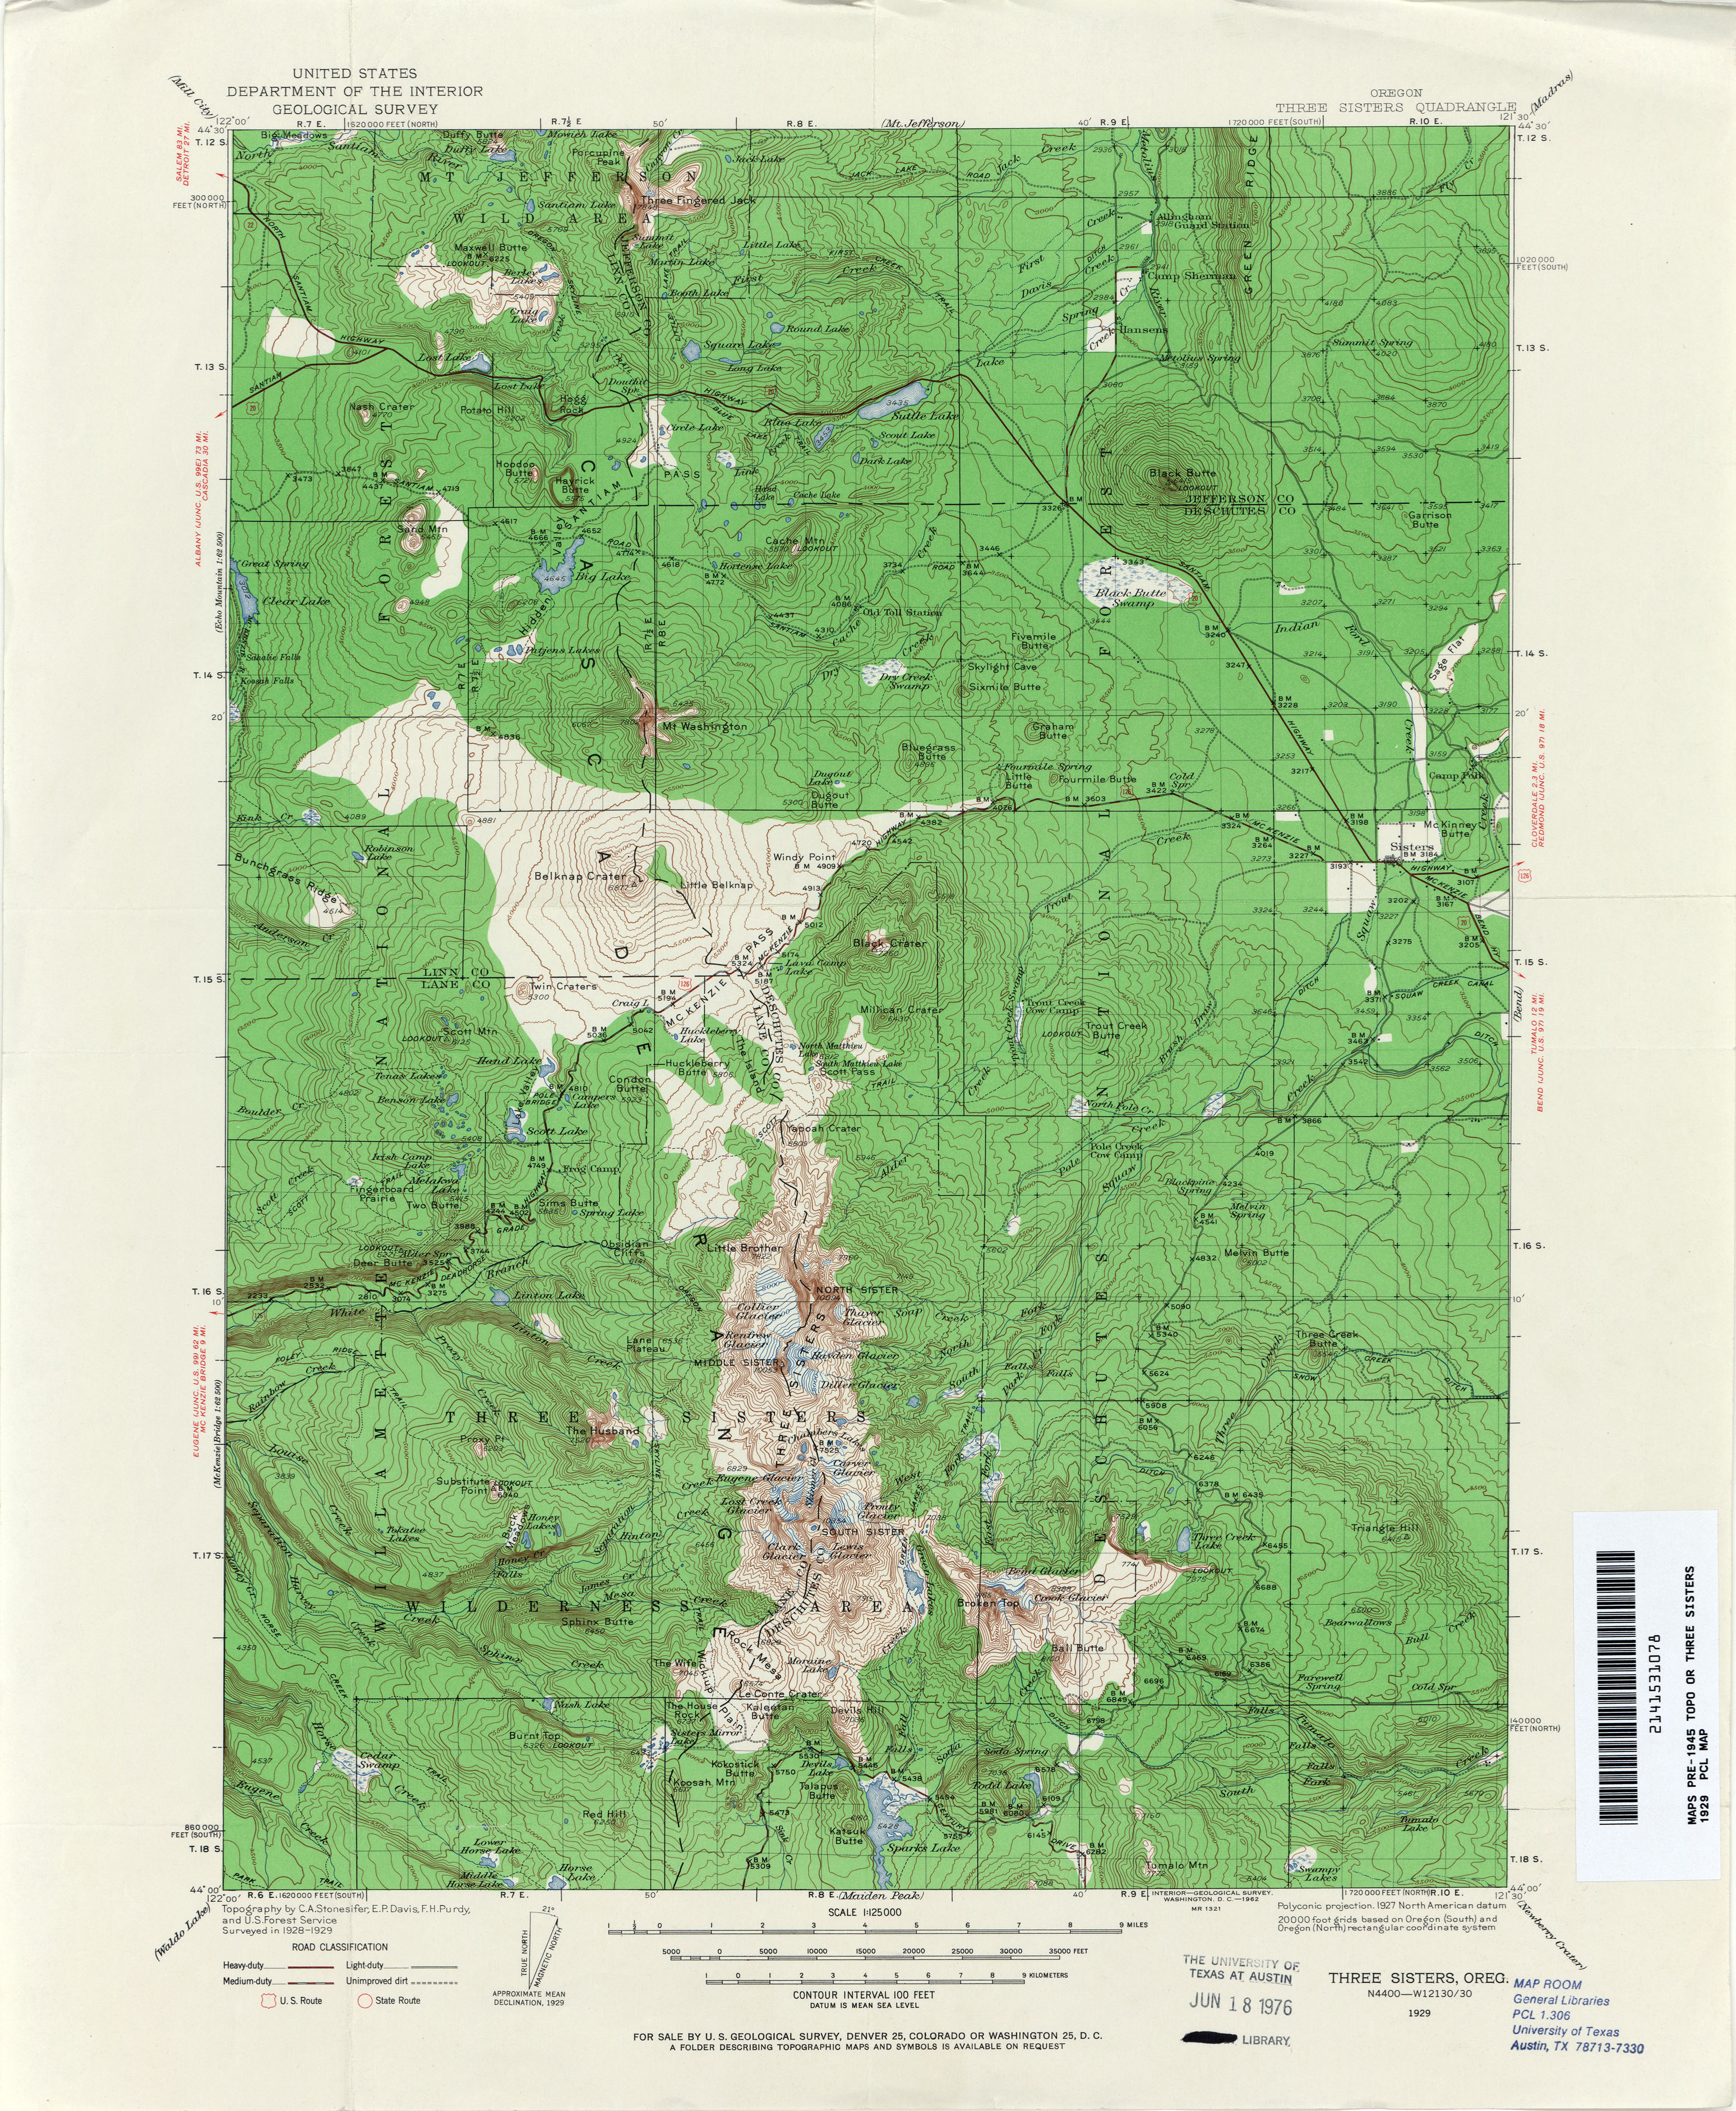 Oregon Topographic Map Oregon Historical Topographic Maps   Perry Castañeda Map  Oregon Topographic Map